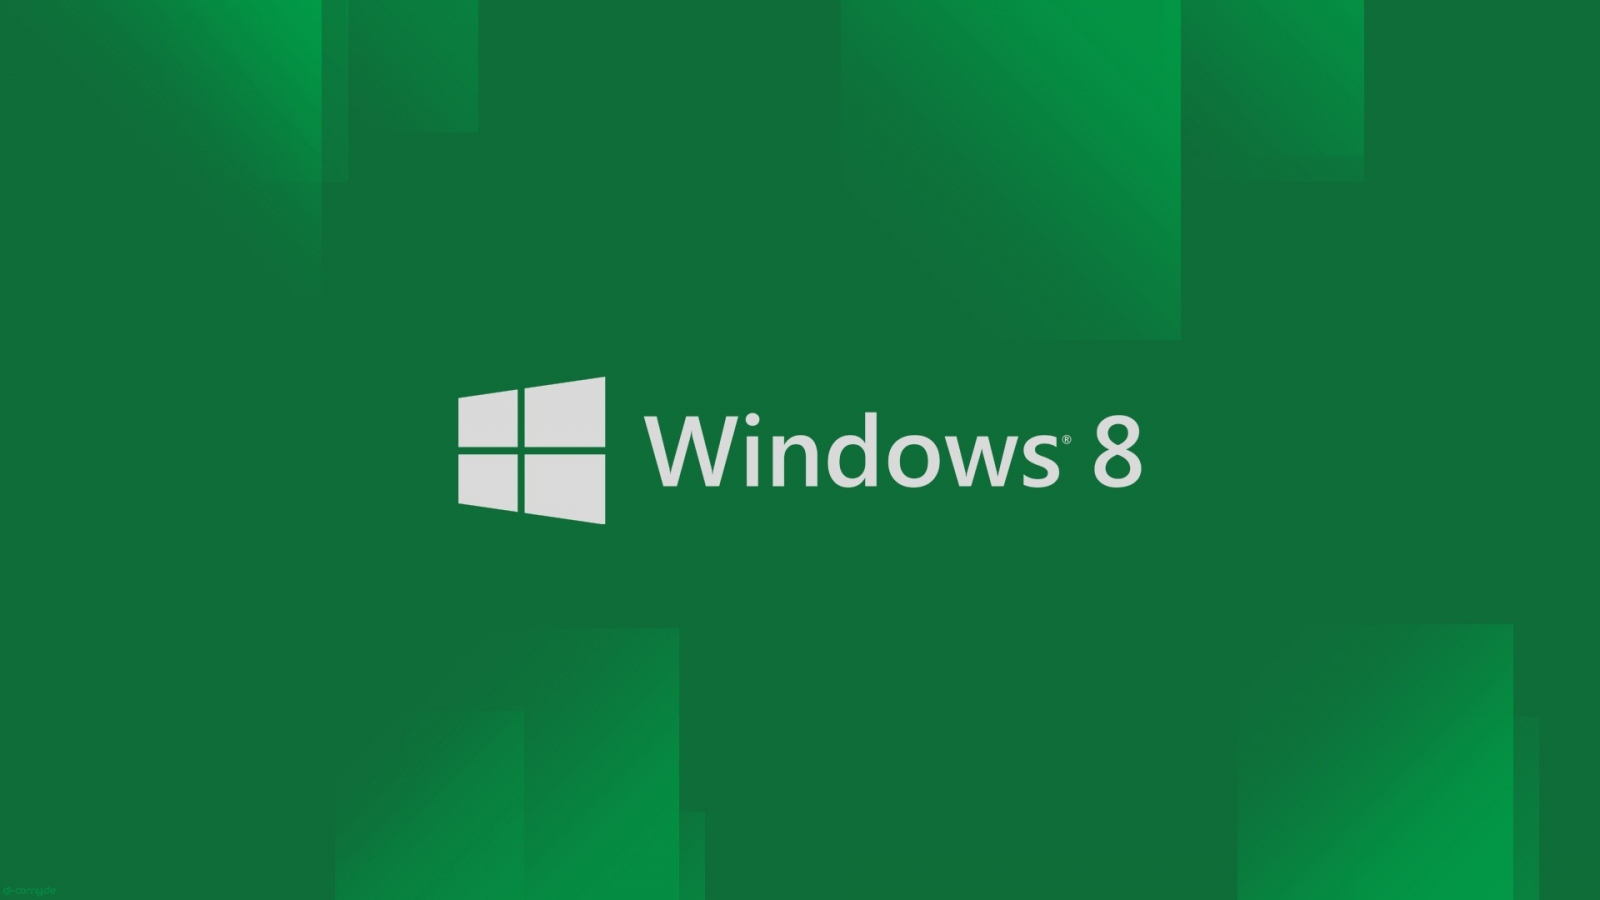 Windows Backgrounds Wallpapers  Wallpaper  1600x900